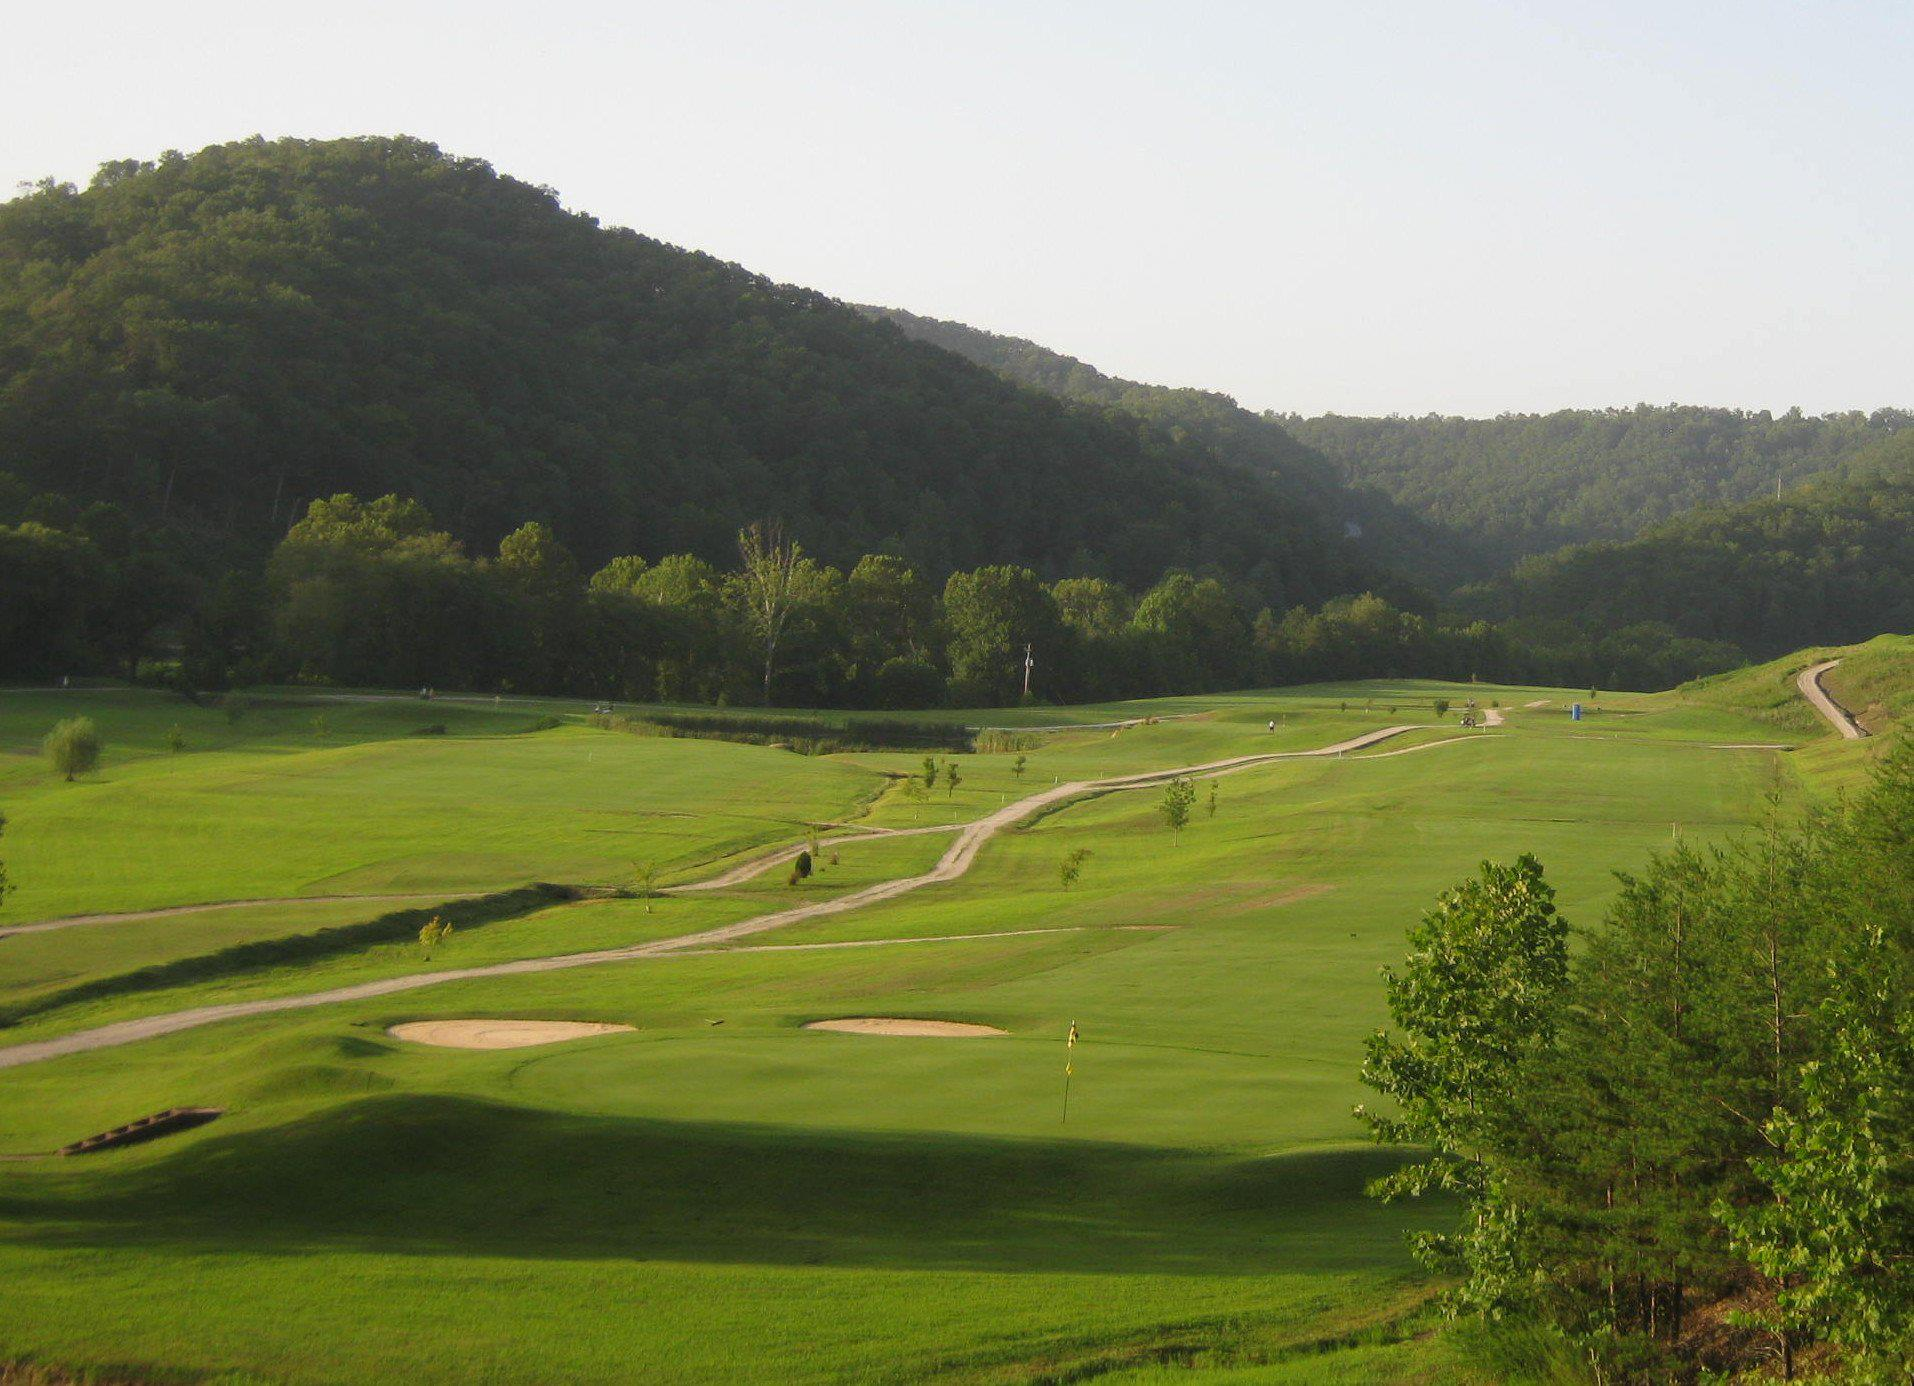 Overview of golf course named Sugar Camp Golf Club